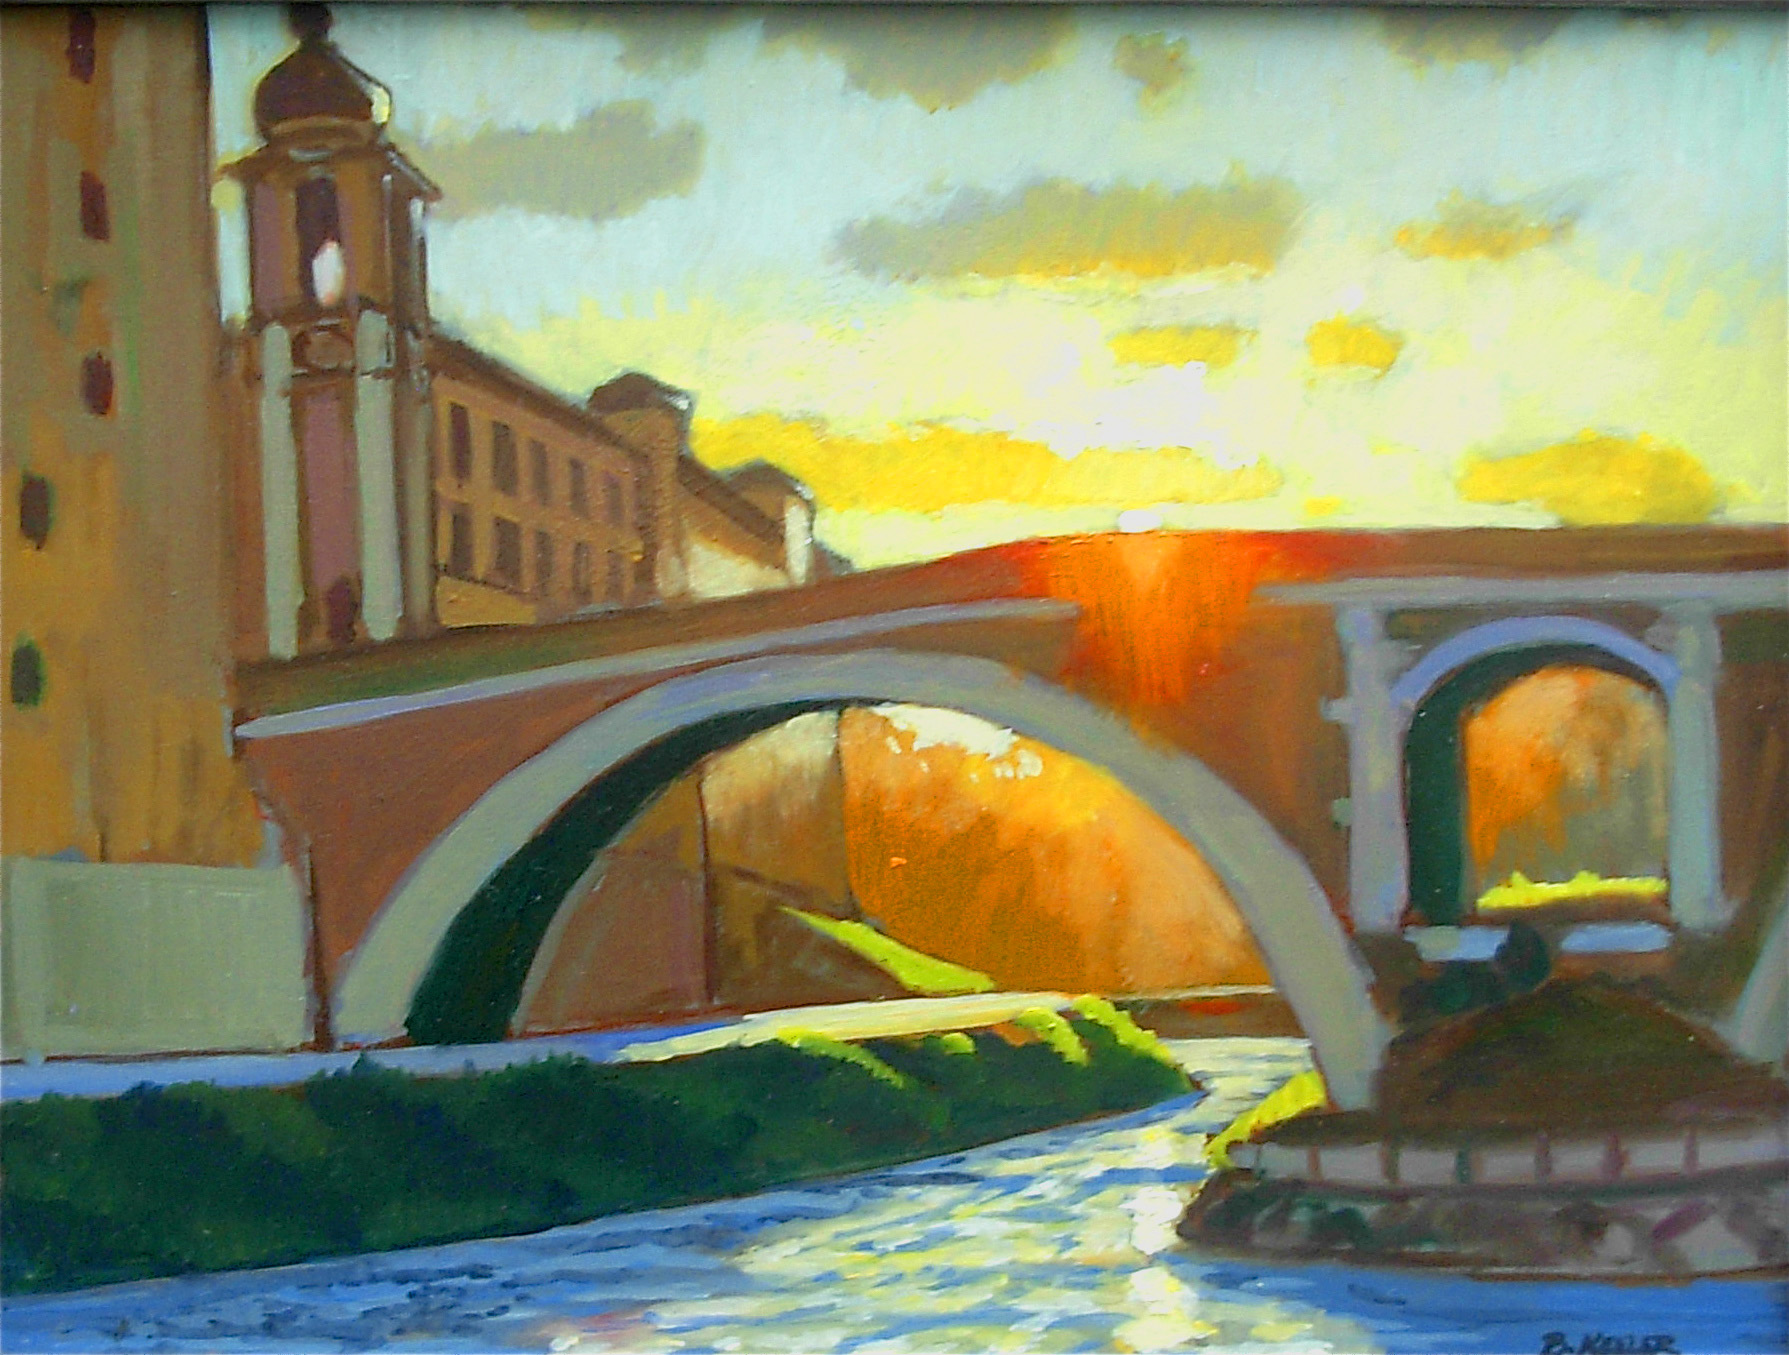 059 Ponte Fabricio, Rome Oil 12 x 16 HR - Copy